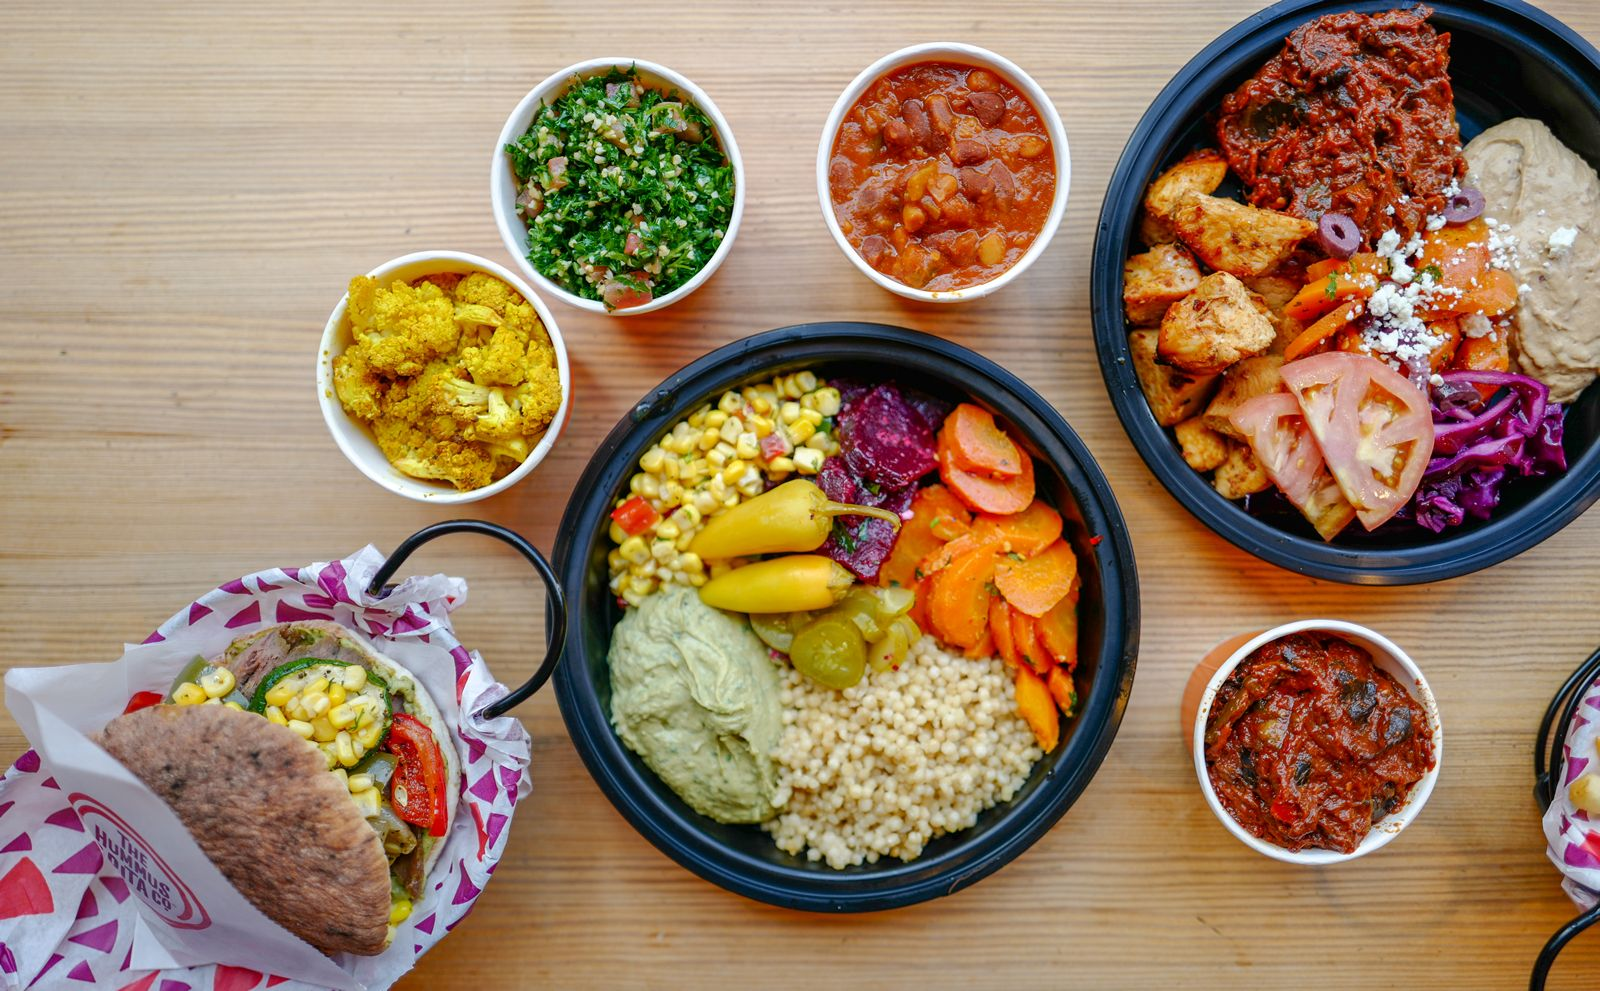 Mediterranean Fast Casual Leader, The Hummus & Pita Co. Announces Highly-Anticipated Grand Opening of First Atlanta Location